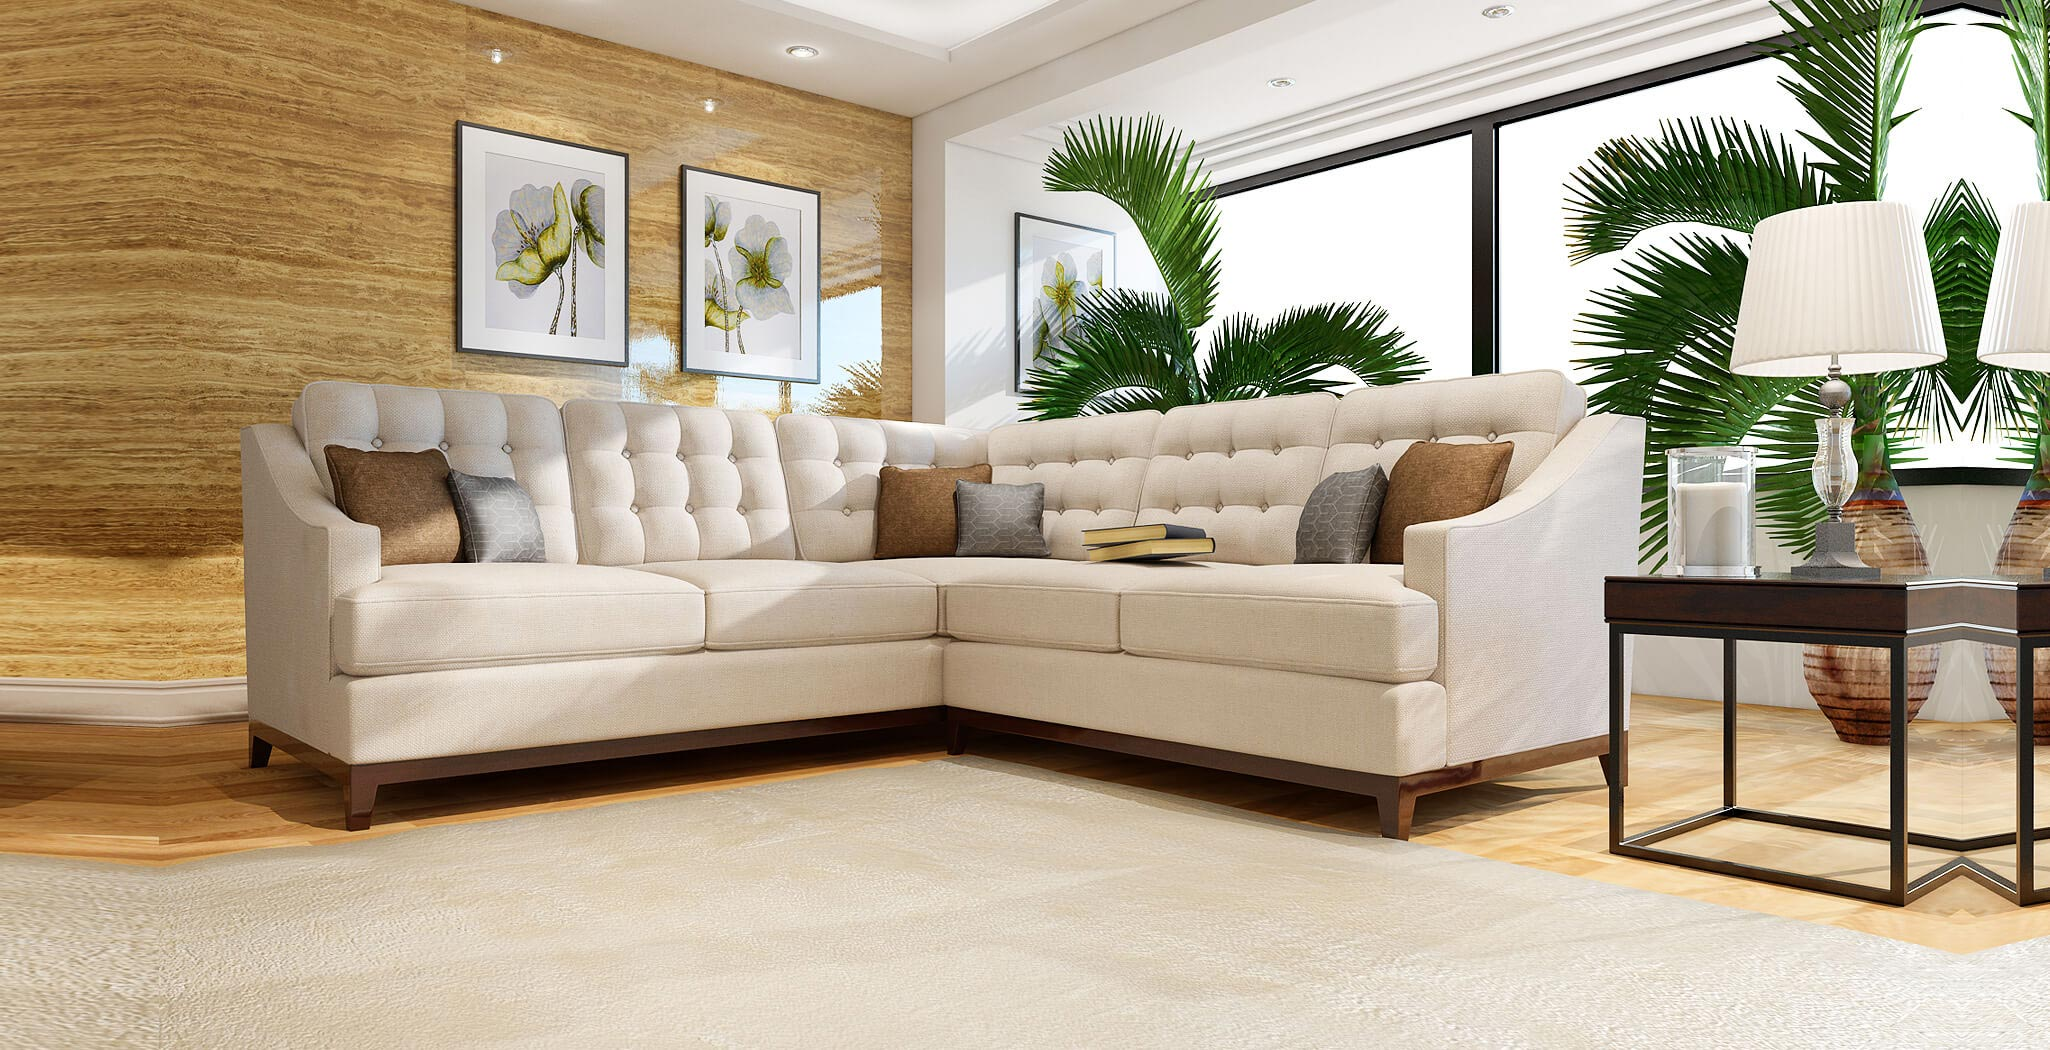 geneva sectional furniture gallery 1